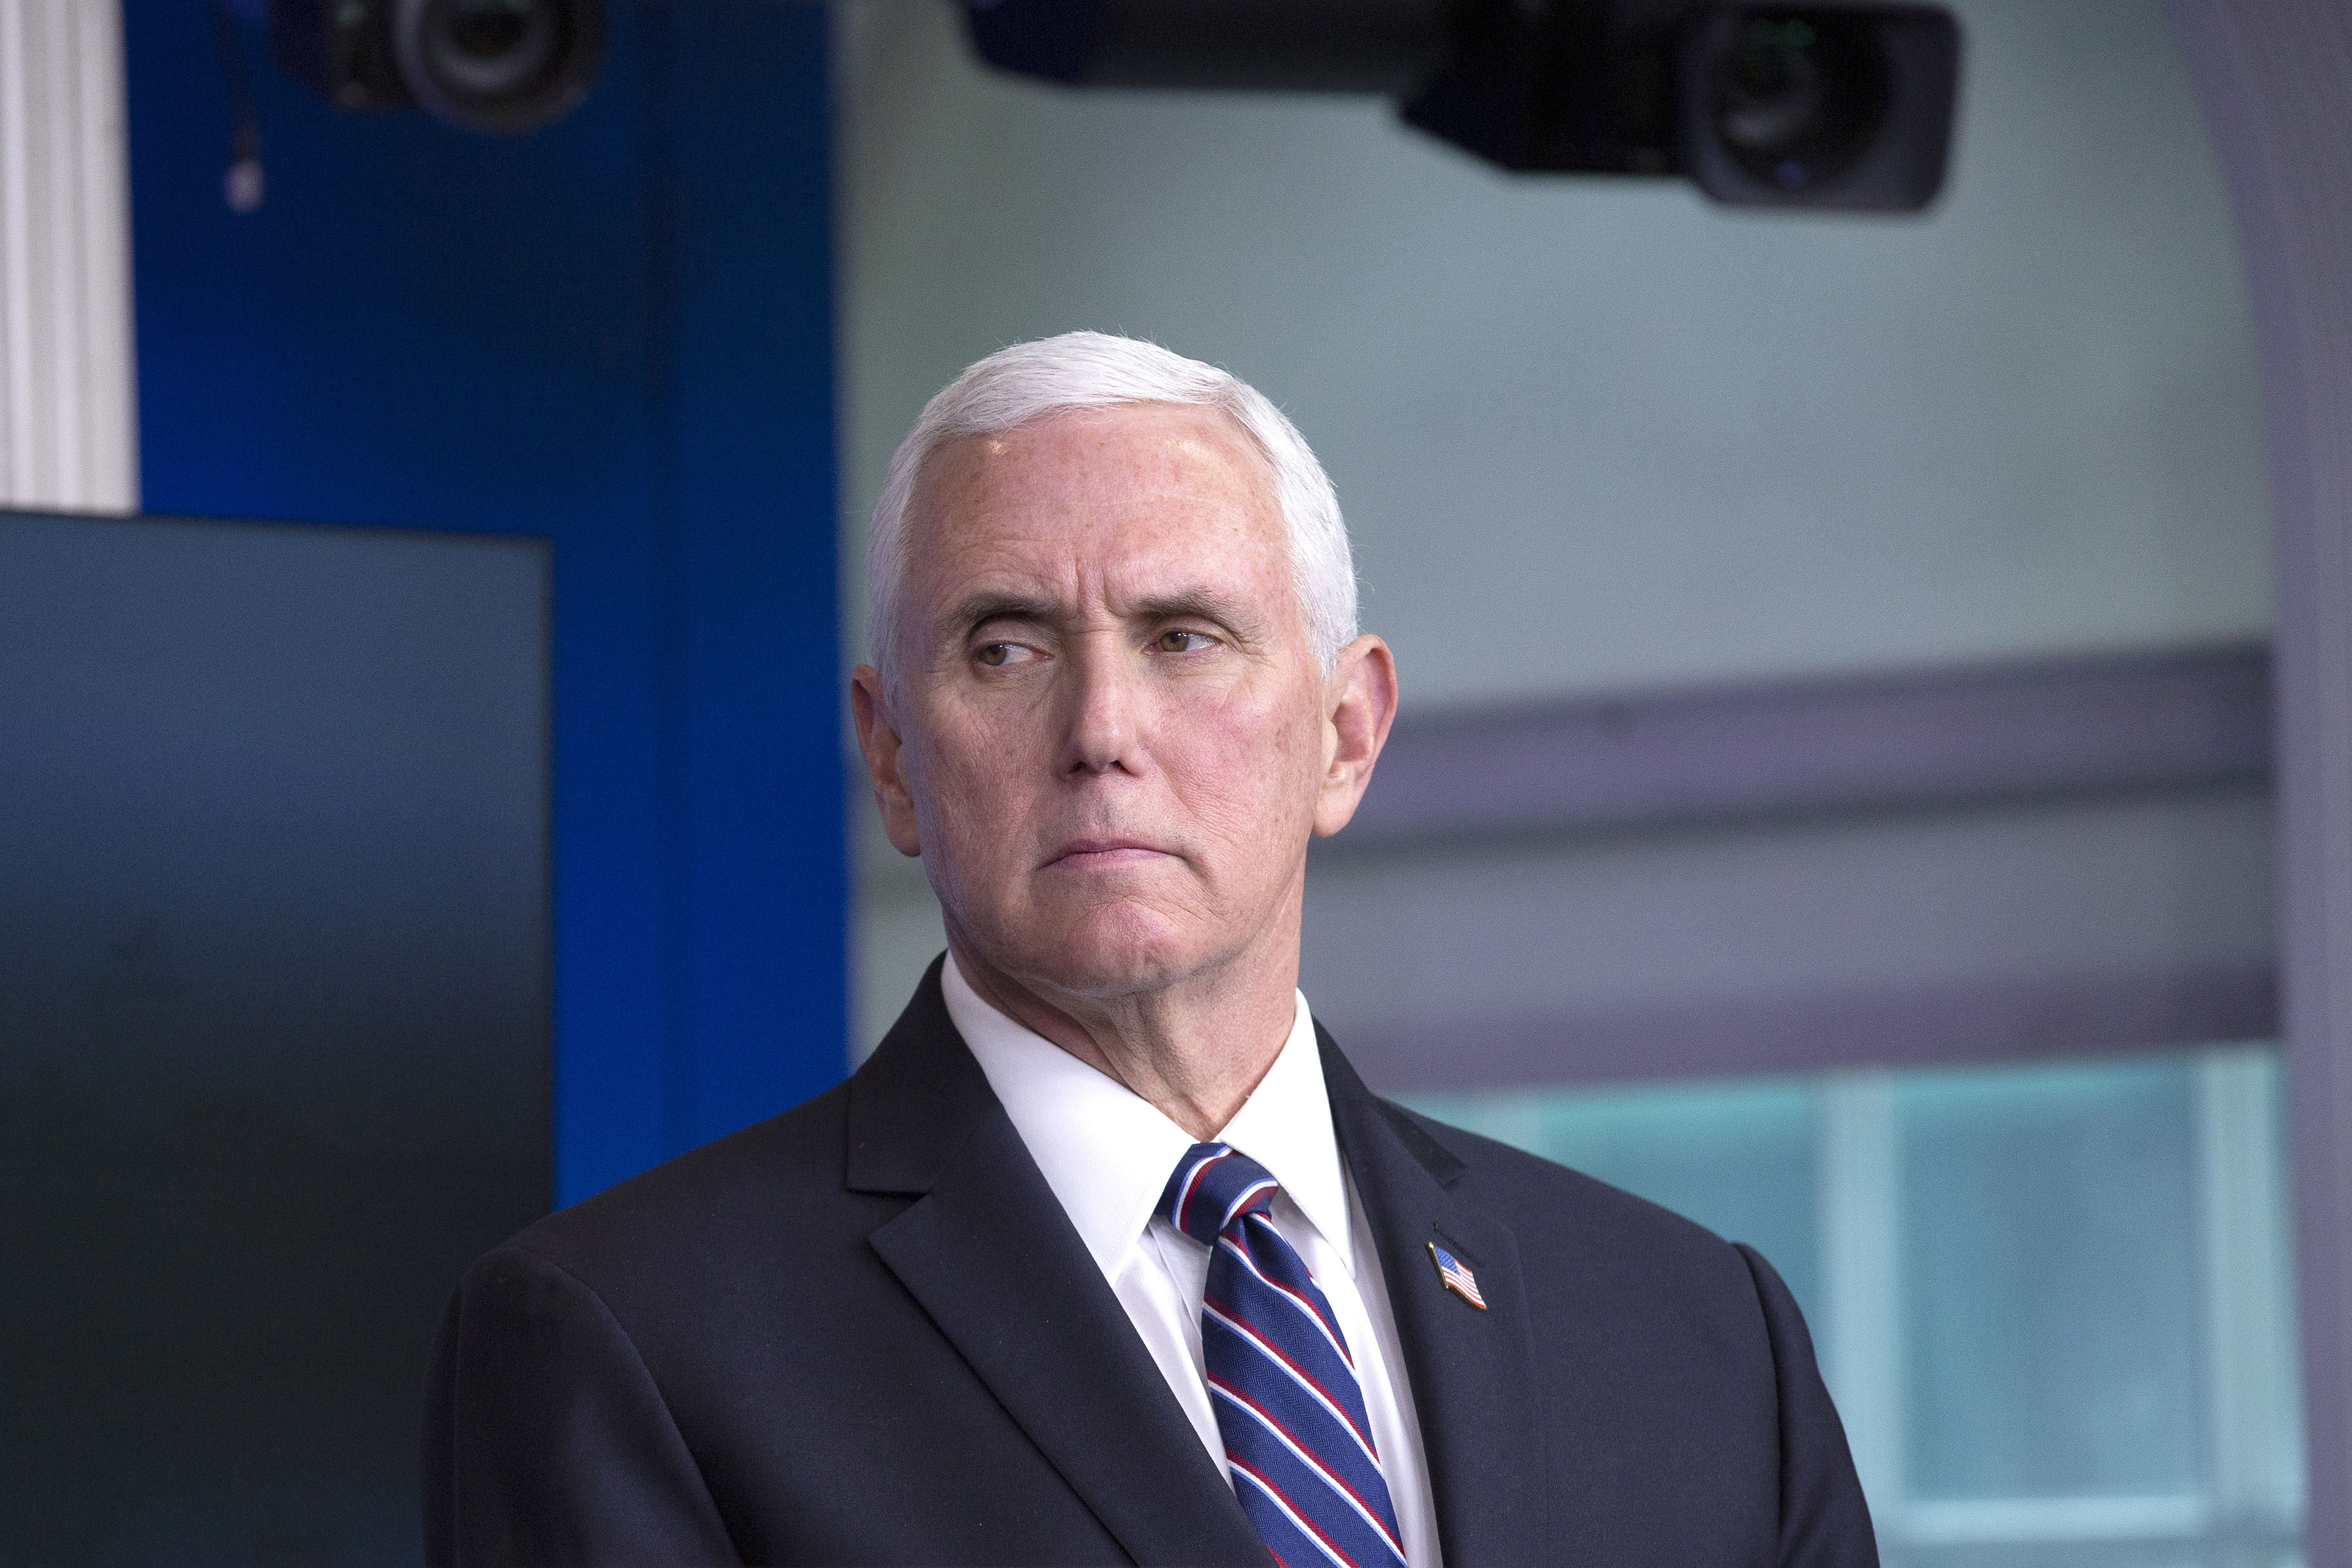 US Vice President Mike Pence listens during a coronavirus news conference at the White House on April 19.